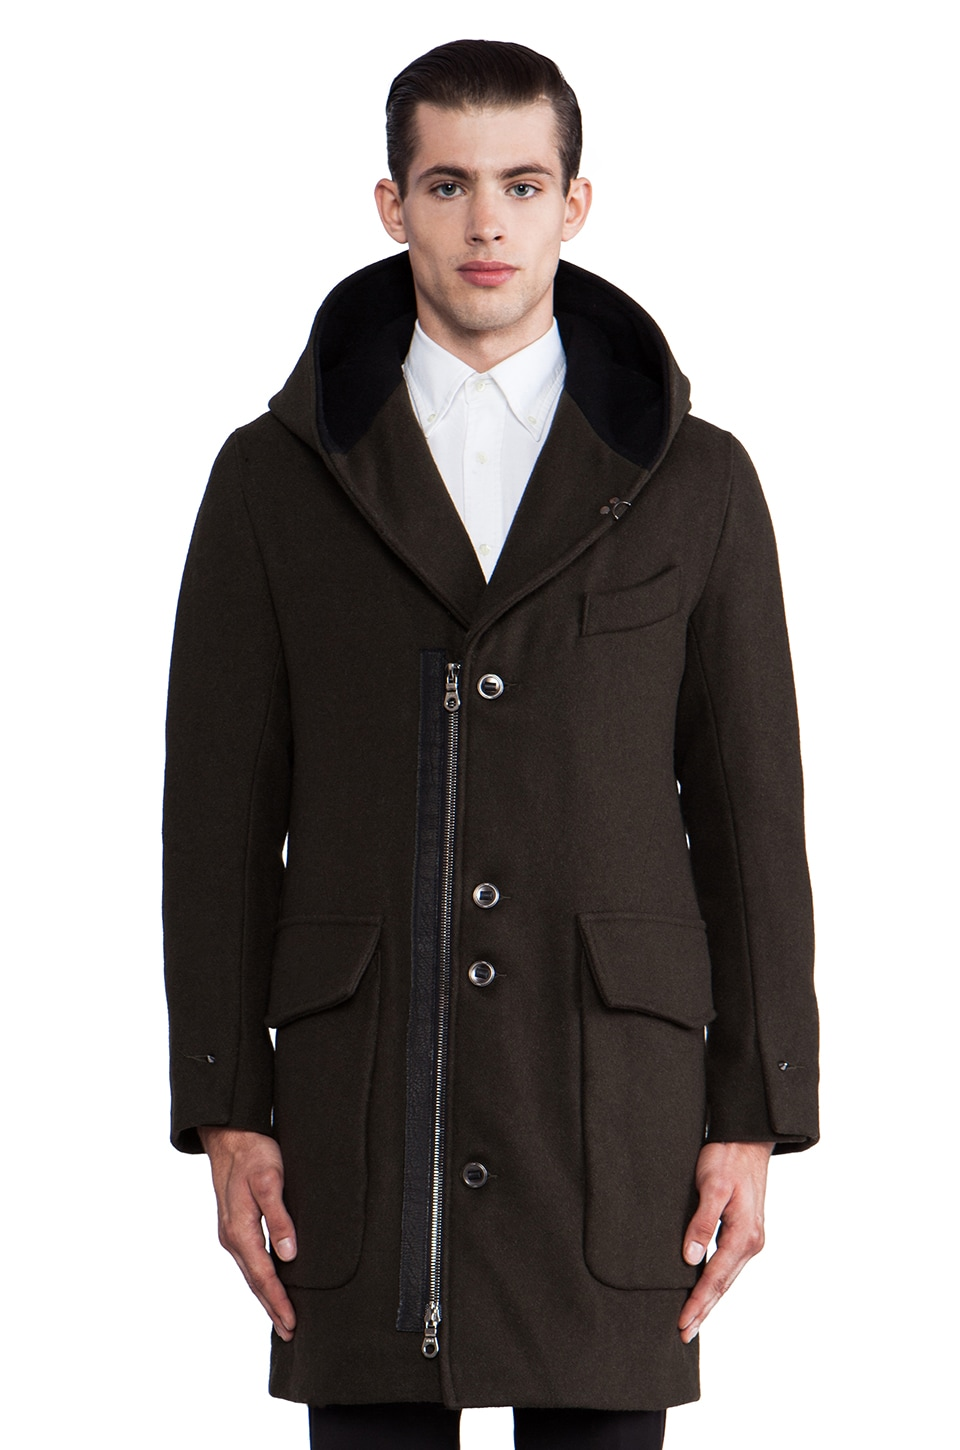 KRANE Beaumer Hooded Shawl Collar Overcoat in Dark Olive